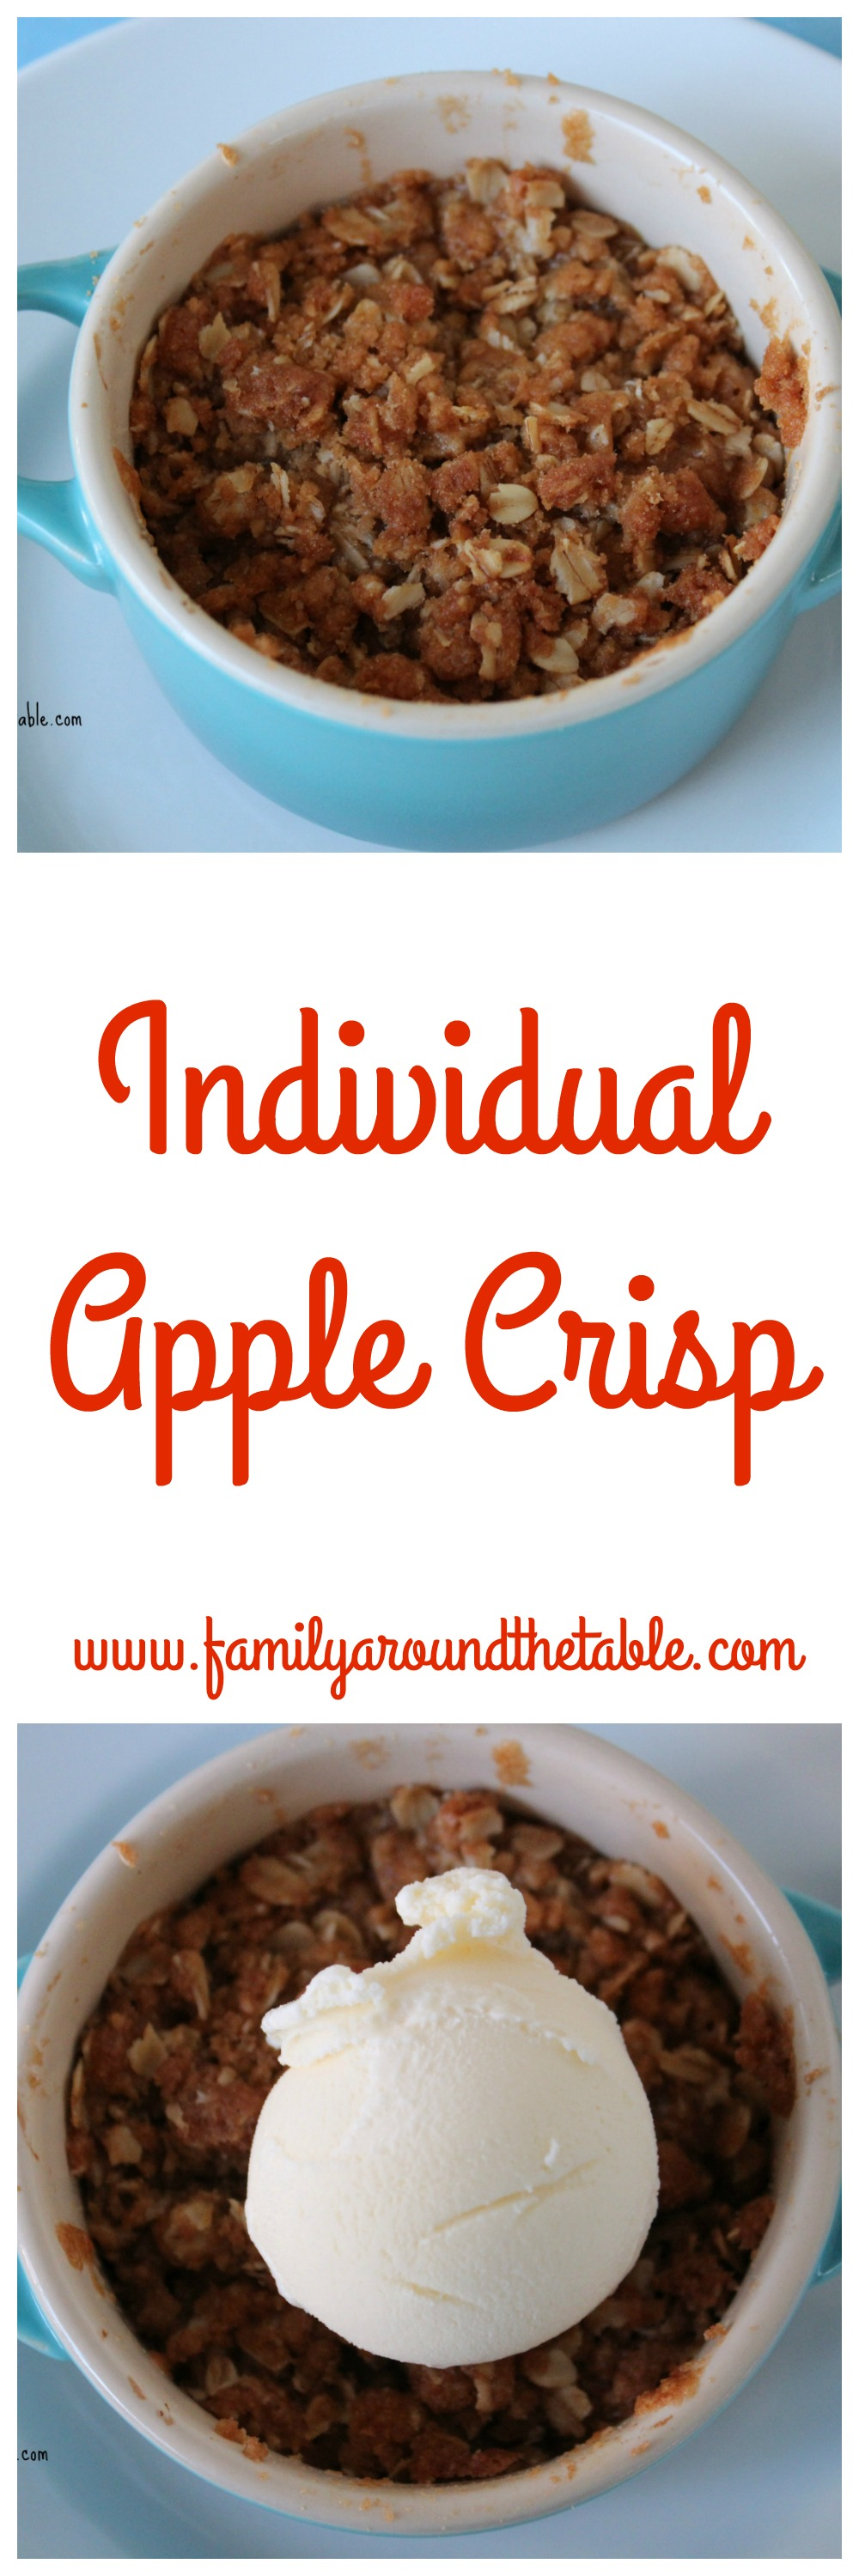 Individual Apple Crisp allows you to make as many as you need.